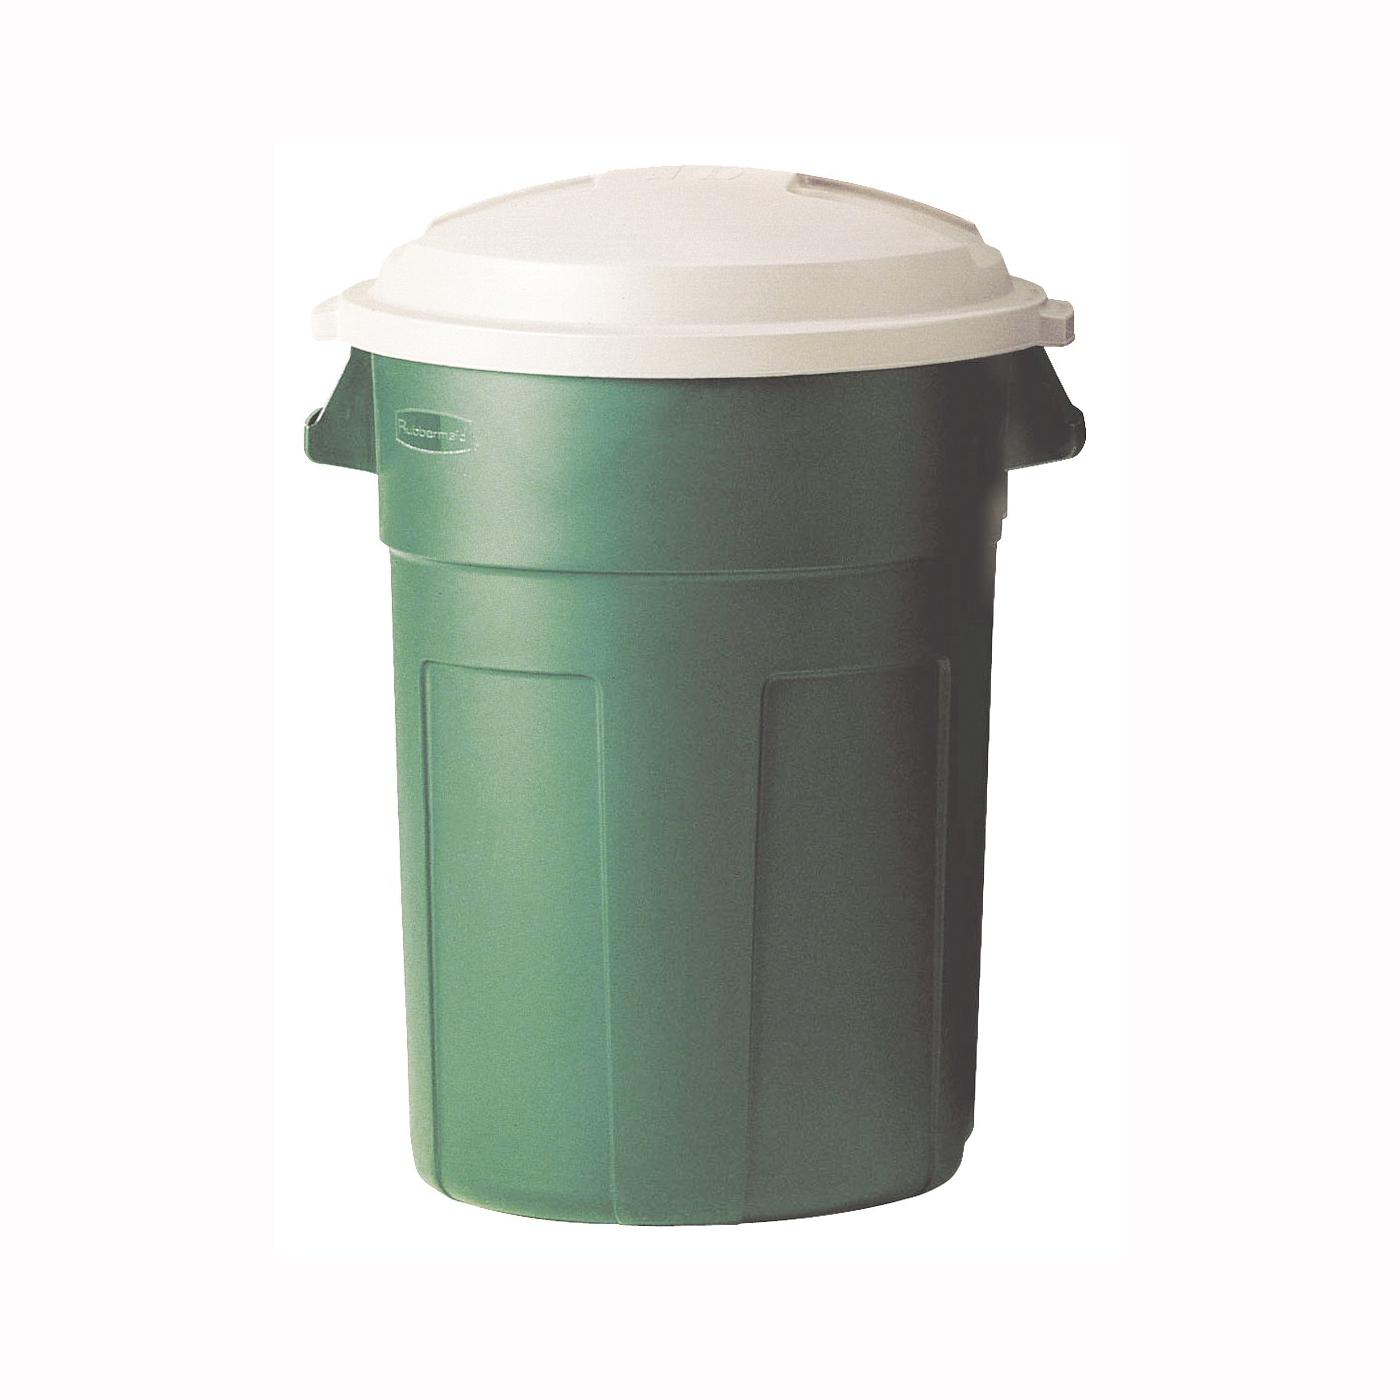 Picture of Rubbermaid 289487EGRN Trash Can, 32 gal Capacity, Evergreen, Snap-Fit Lid Closure